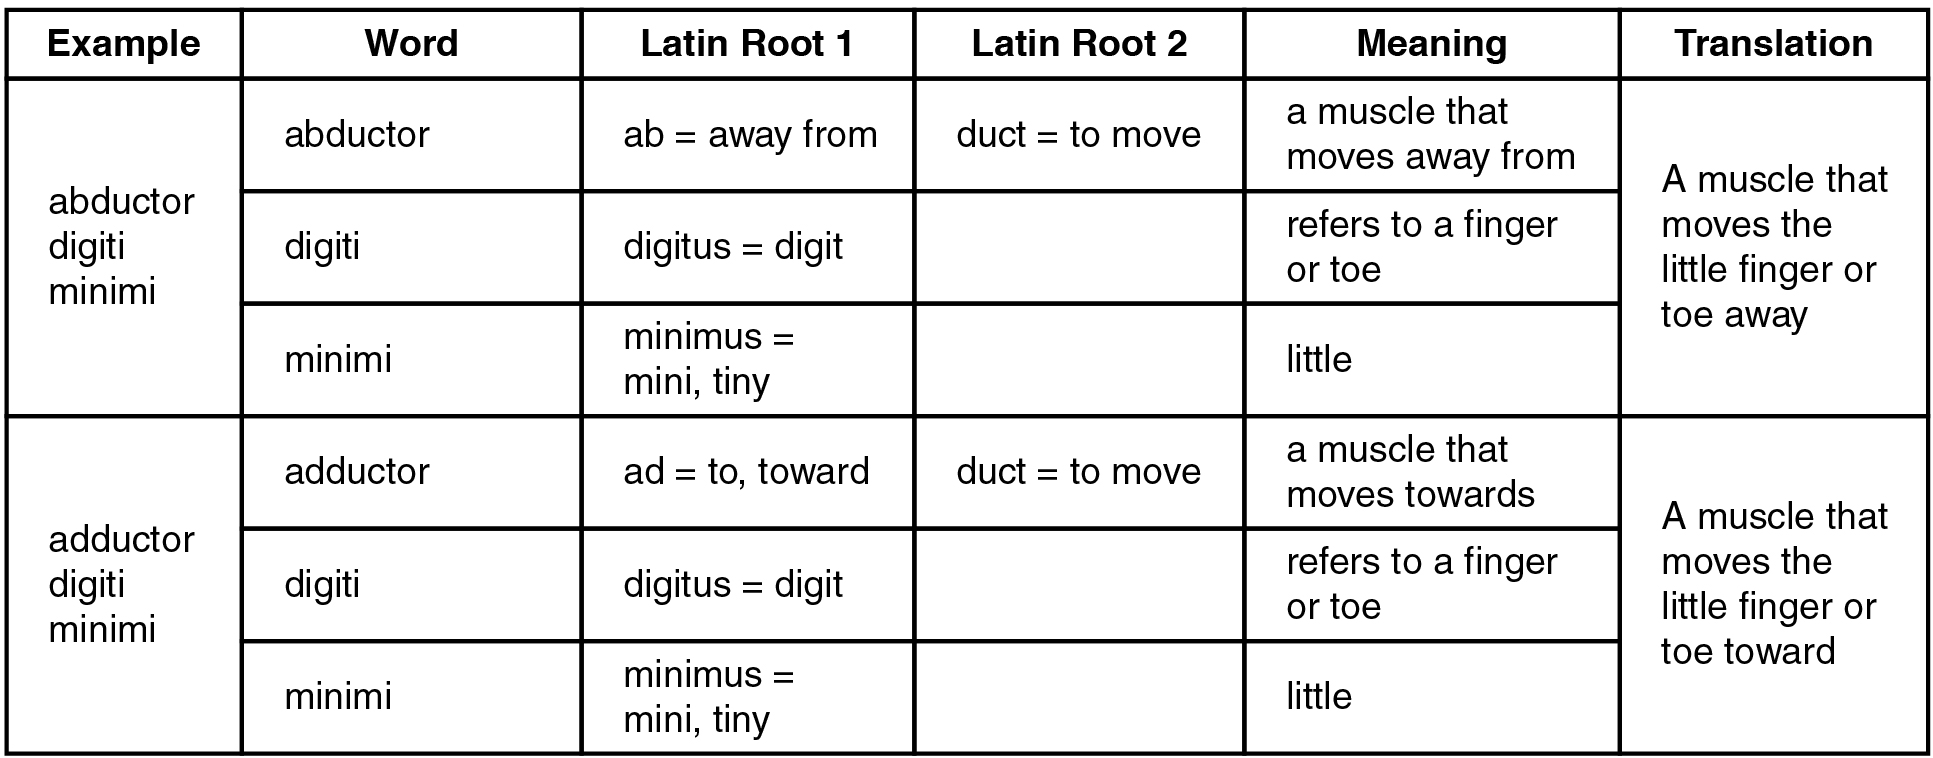 This table shows two examples of muscle names and how to translate them based on their Latin roots. The first row uses abductor digiti minimi as an example. The word abductor comes from the Latin roots ab, which means away from, and duct, which means to move. Therefore an abductor is a muscle that moves away from something. The word digiti comes from the Latin root digititus, which means digit and refers to a finger or toe. The word minimi comes from the Latin root minimus, which means minimum, tiny, or little. Therefore, the abductor digiti minimi is a muscle that moves the little finger or toe away. The second row uses the adductor digiti minimi as an example. The word adductor comes from the Latin root ad, which means to or toward, and duct, which means to move. Therefore an adductor is a muscle that moves toward something. As with the abductor digiti minimi, digiti refers to a finger or toe and minimi refers to something that is little. Therefore the adductor digiti minimi is a muscle that moves the little finger or toe forward.